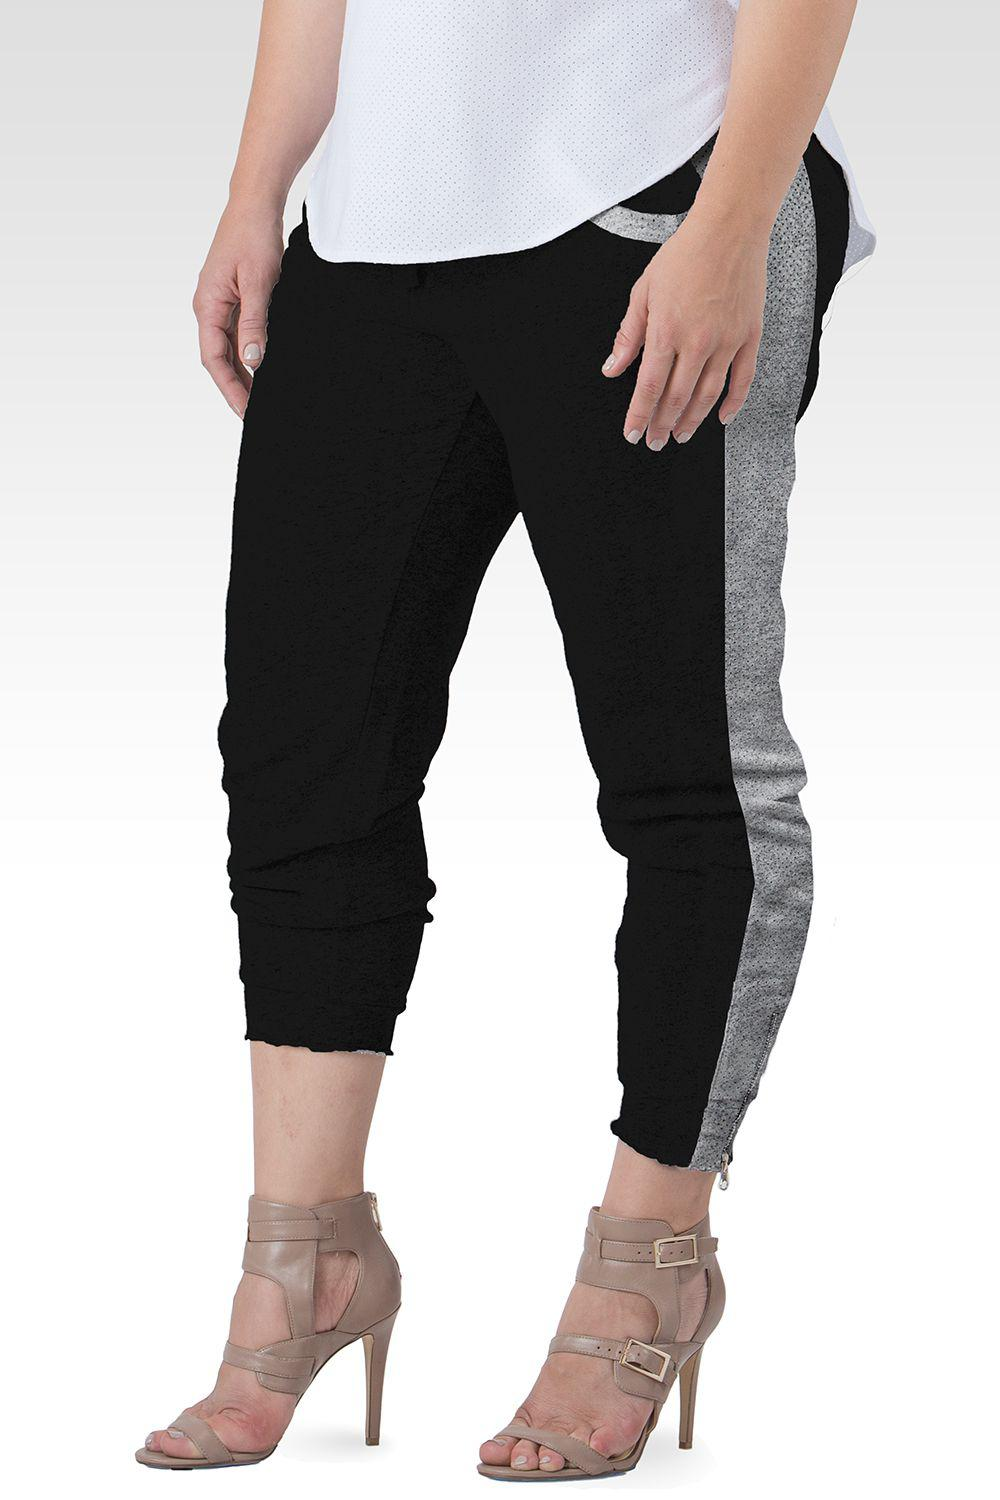 Sami Black French Terry With Grey Mesh Side Ankle Zip Pull On Jogger Pants